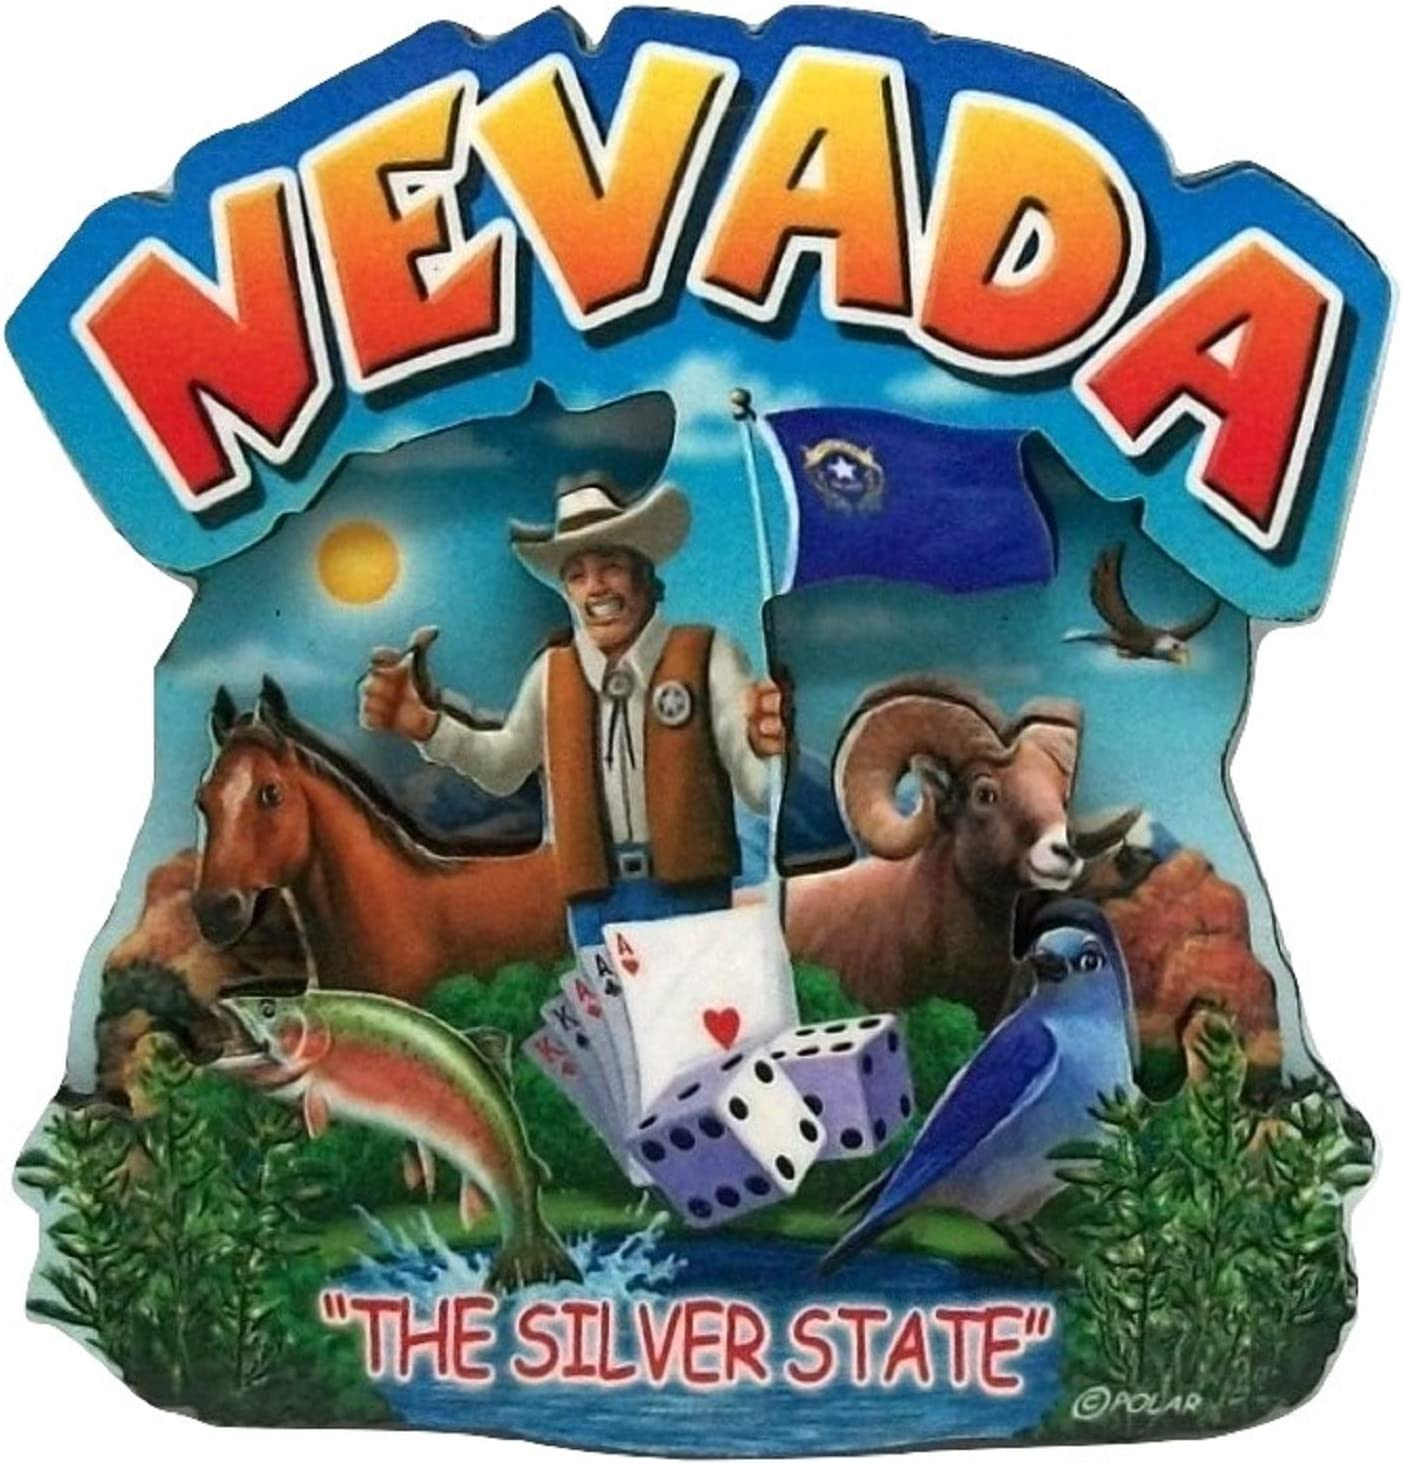 Nevada The Silver State Artwood Initial Fridge Magnet